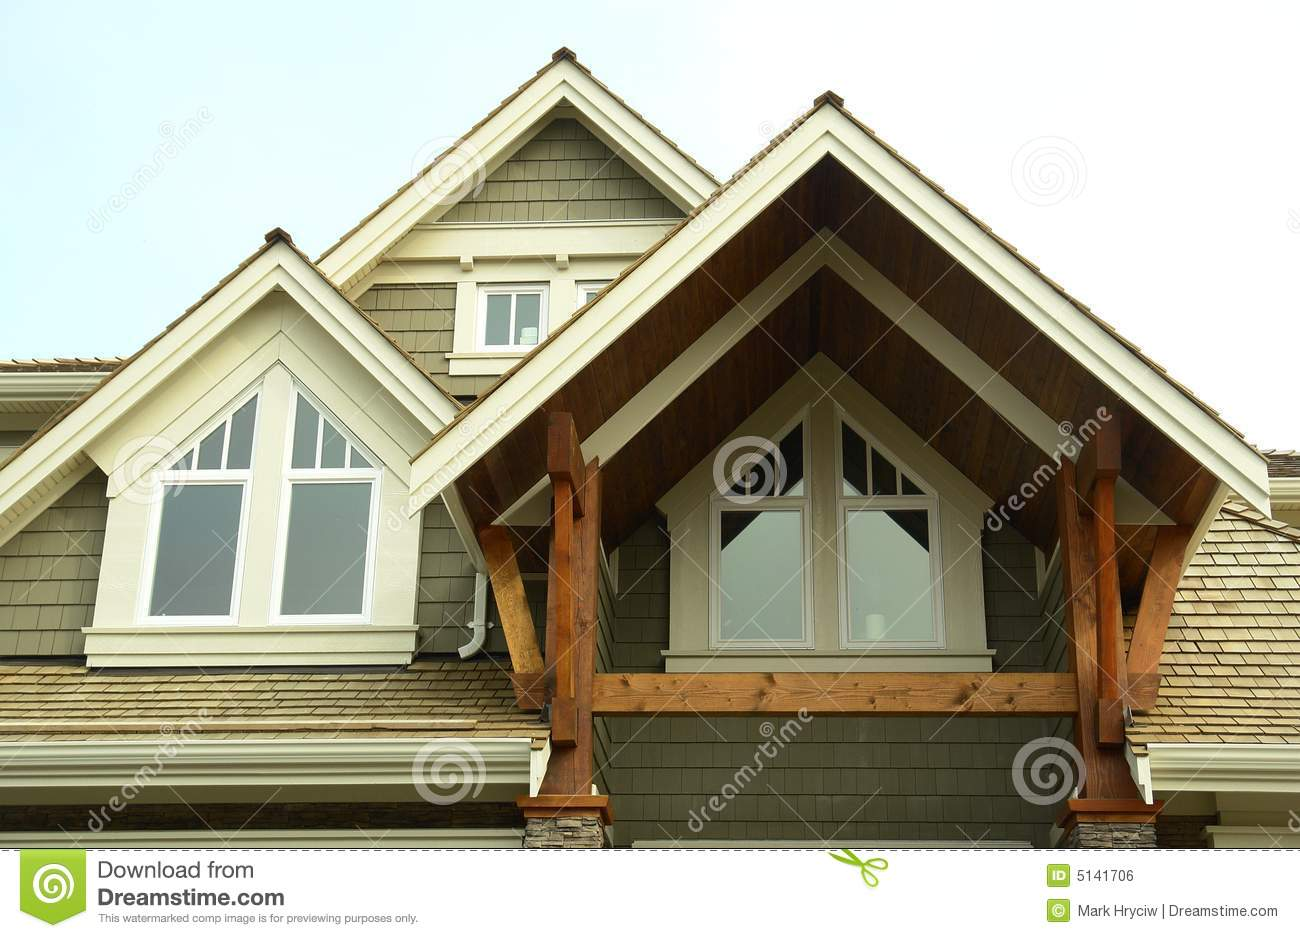 Home house exterior windows royalty free stock image image 5141706 - Exterior home windows ...